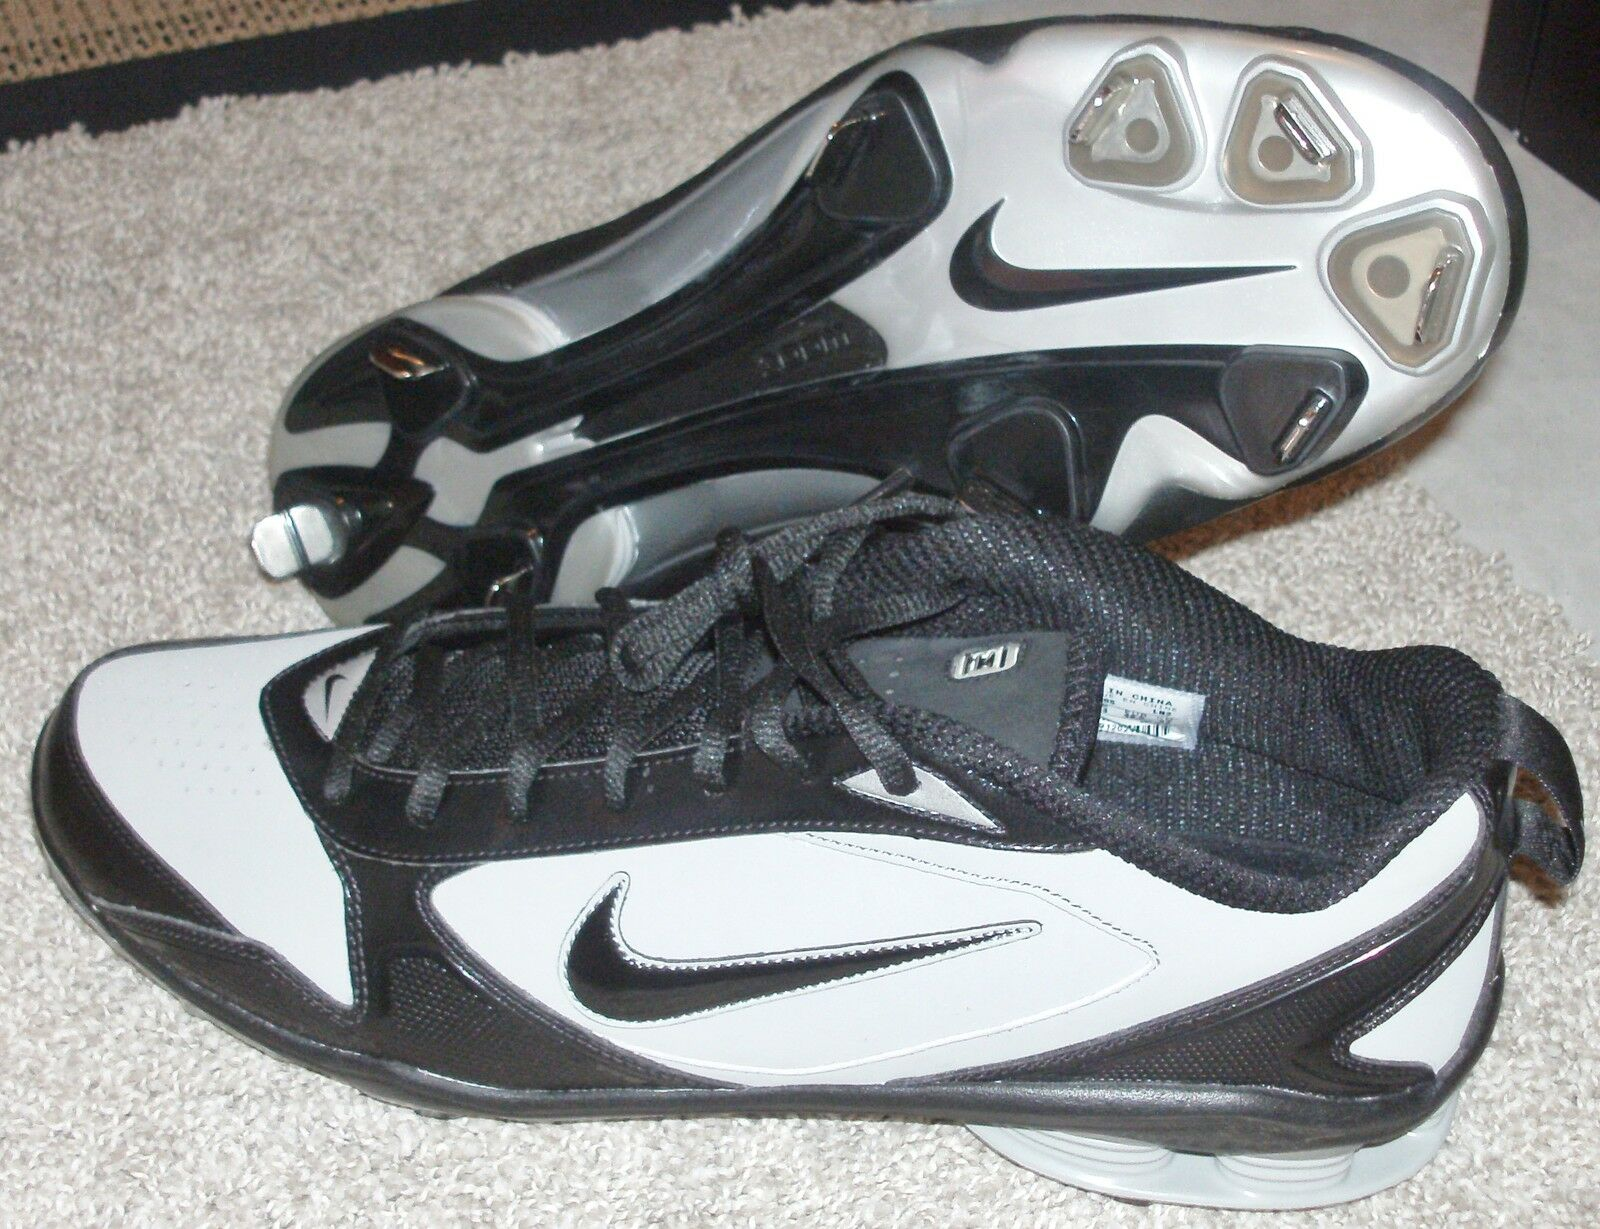 NEW NIKE SHOX FUSE 2 Baseball Cleats MENS 14 Metal Pro Black Price reduction Brand discount